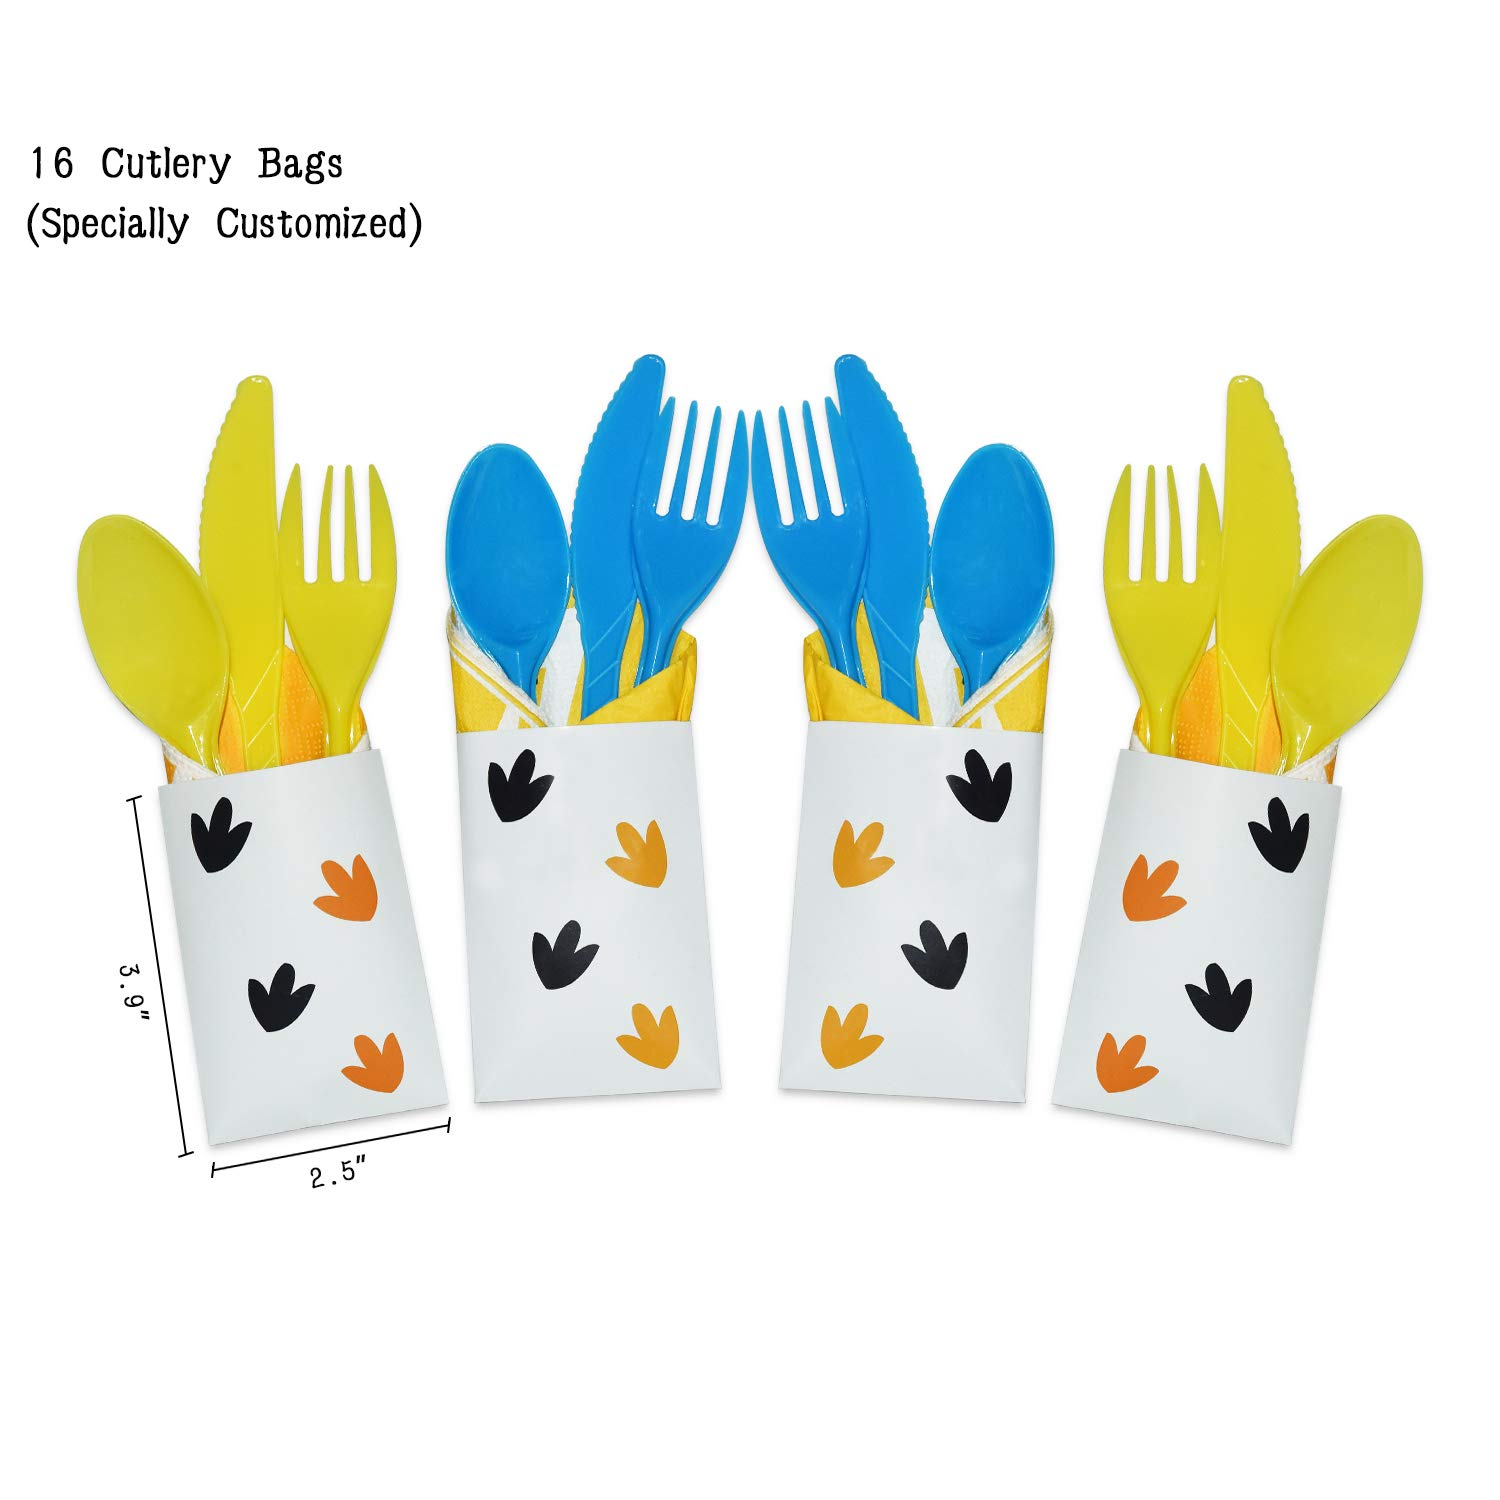 WERNNSAI Dinosaur Party Supplies Set - Dinosaur Themed Party Decoration for Boys Kids Birthday Cutlery Bag Table Cover Plates Cups Napkins Straws Utensils Banner & Balloons Serves 16 Guests 169 PCS by WERNNSAI (Image #6)